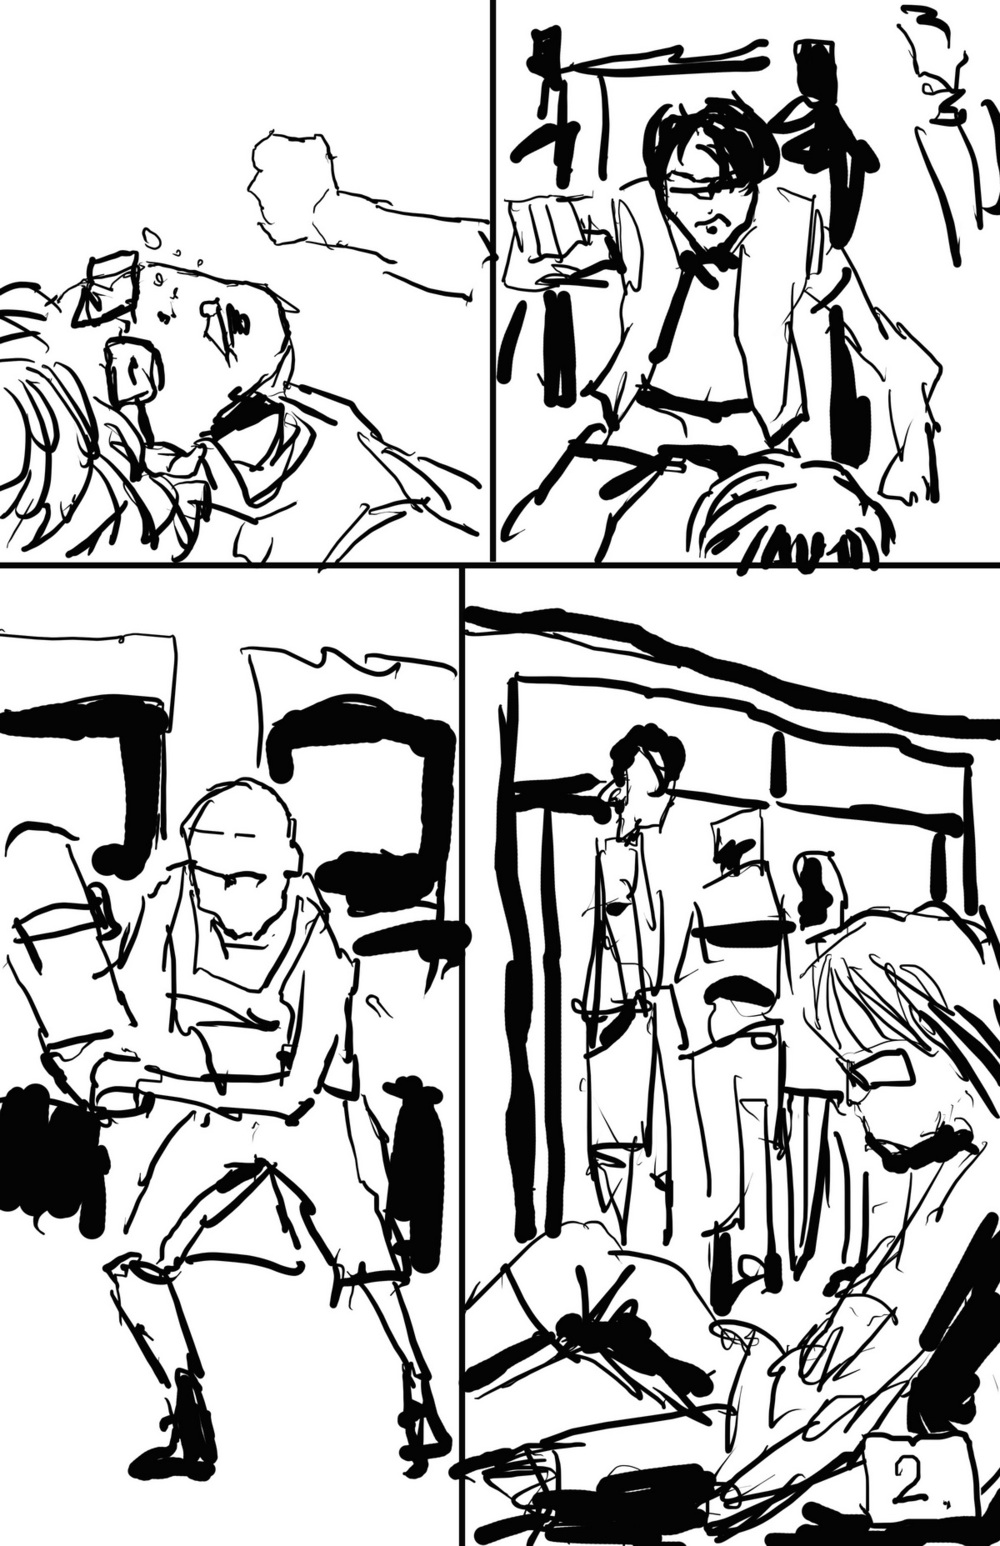 Solar Flare #4 - Page 2 Layout.jpg